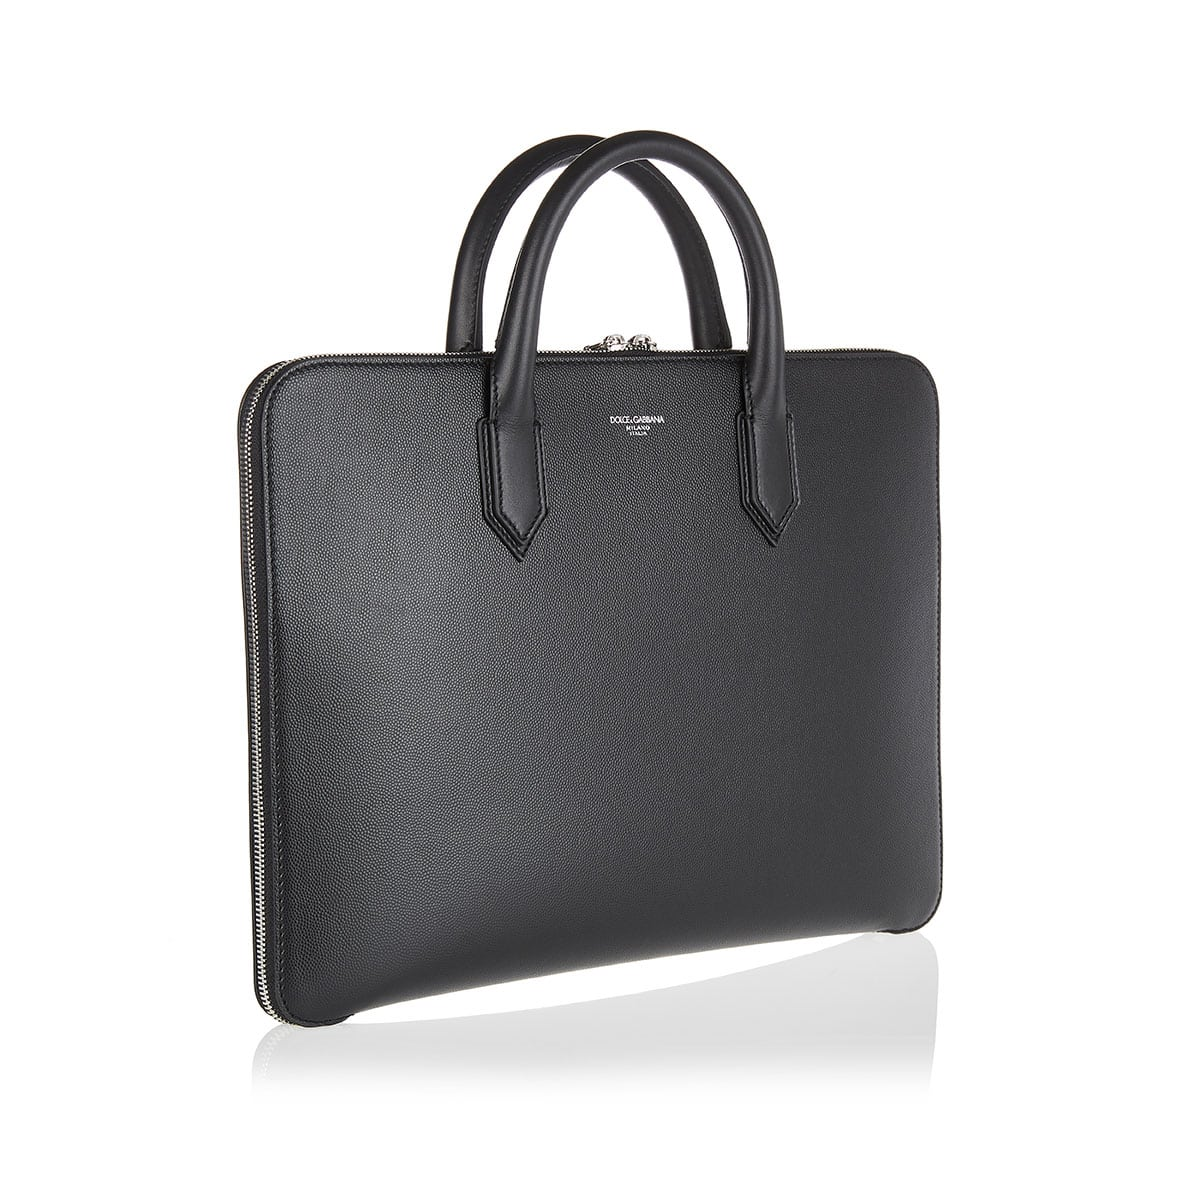 Gotico leather briefcase